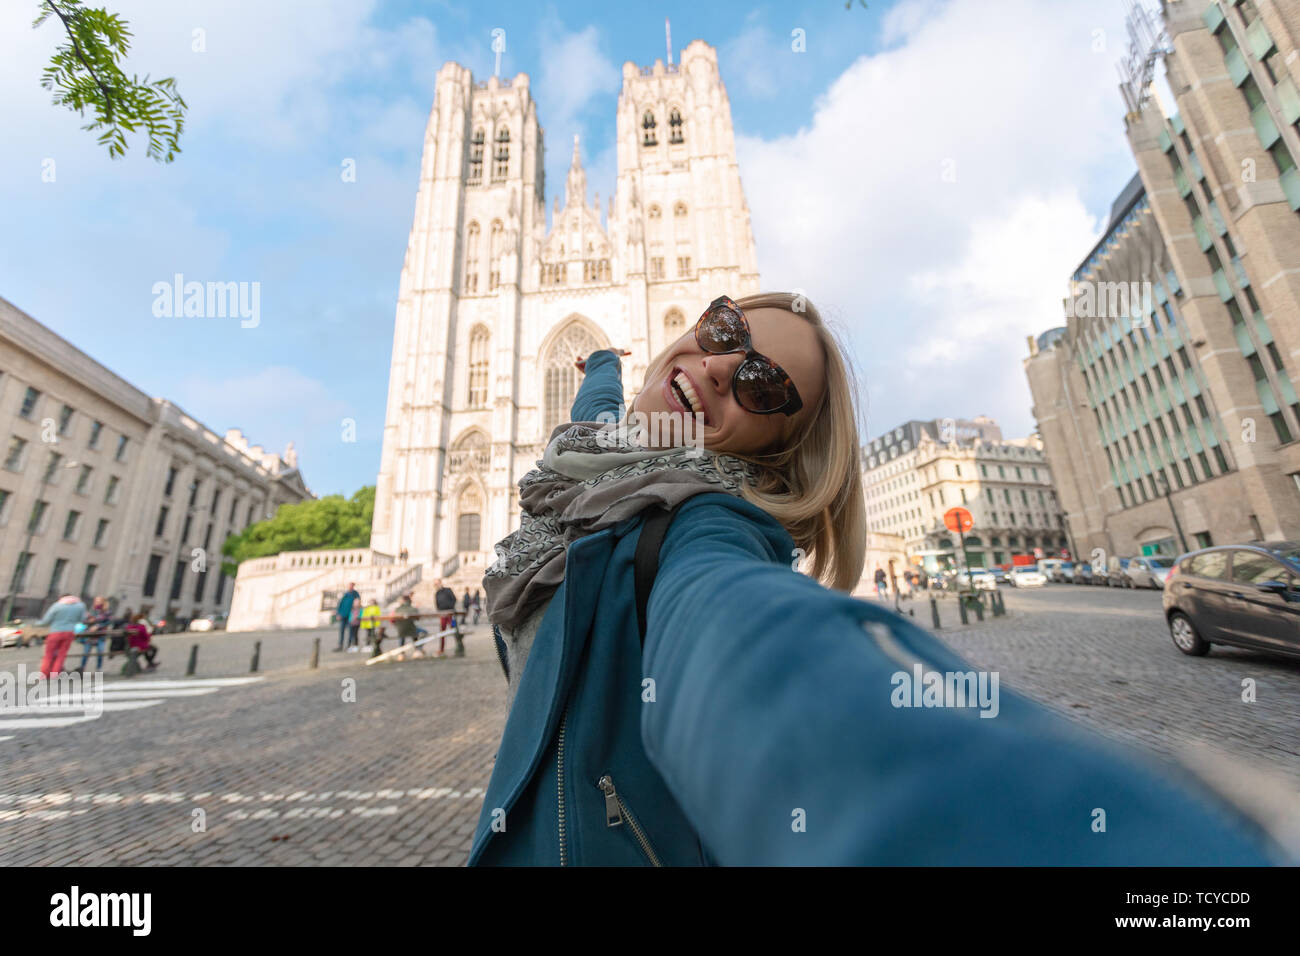 Woman tourist makes a photo about Brussels Cathedral or Saint Michel et Gudula Cathedral in Brussels, Belgium - Stock Image